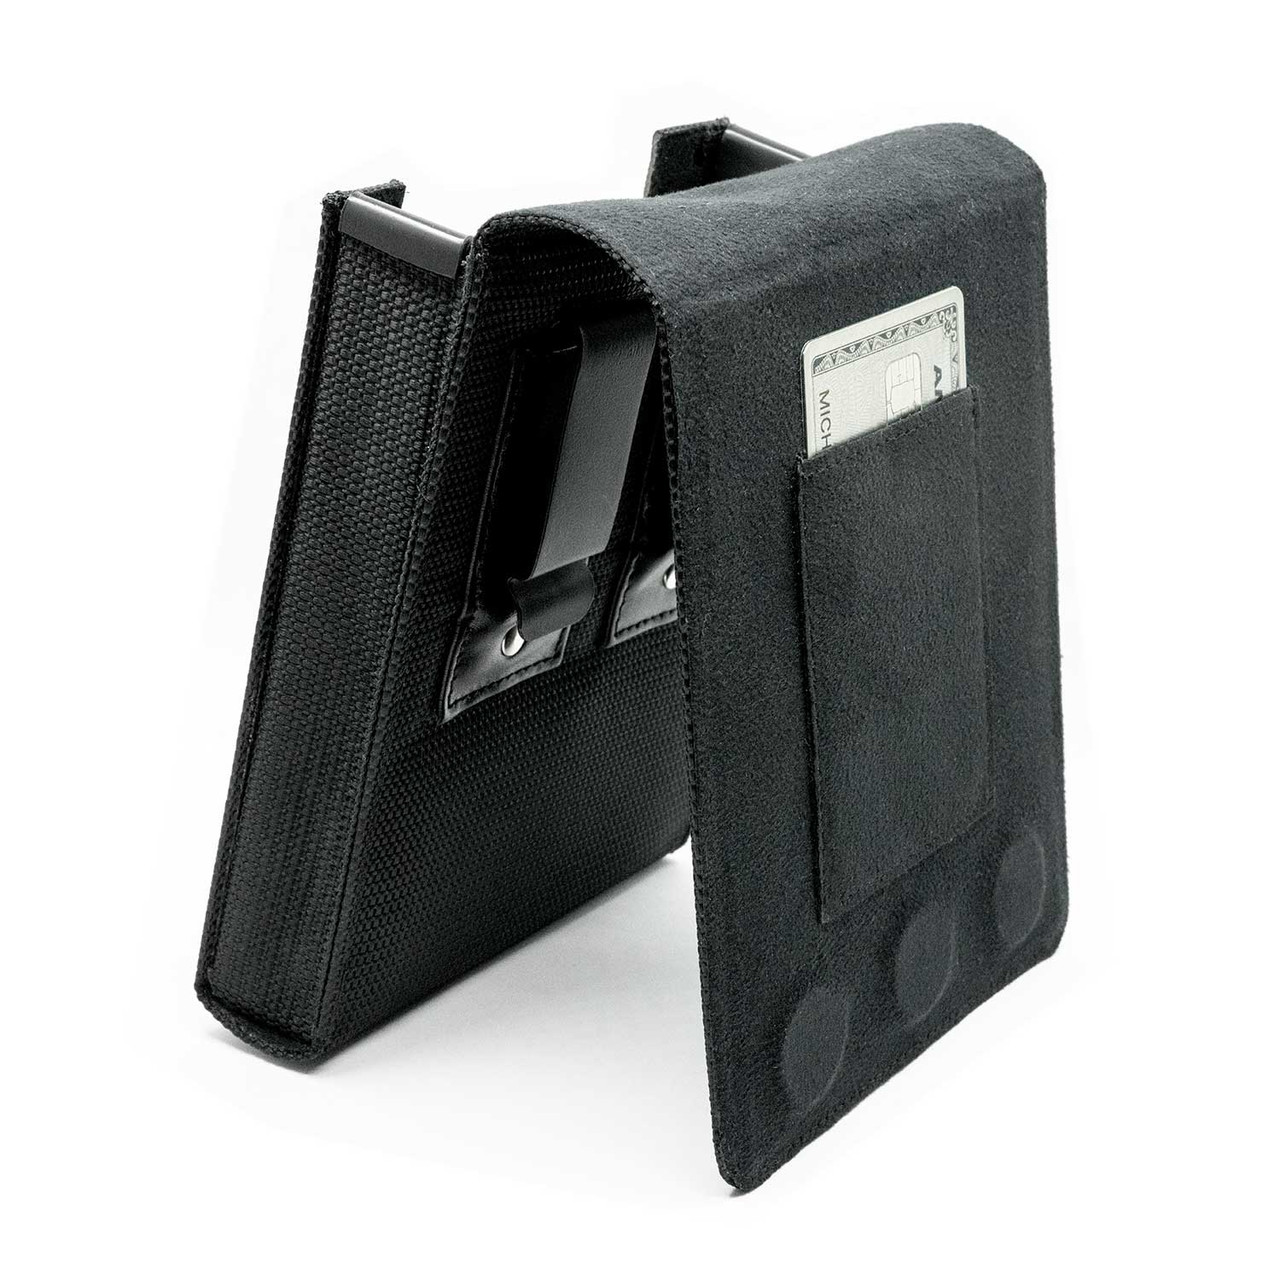 Taurus G2S Air Force Tactical Patch Holster